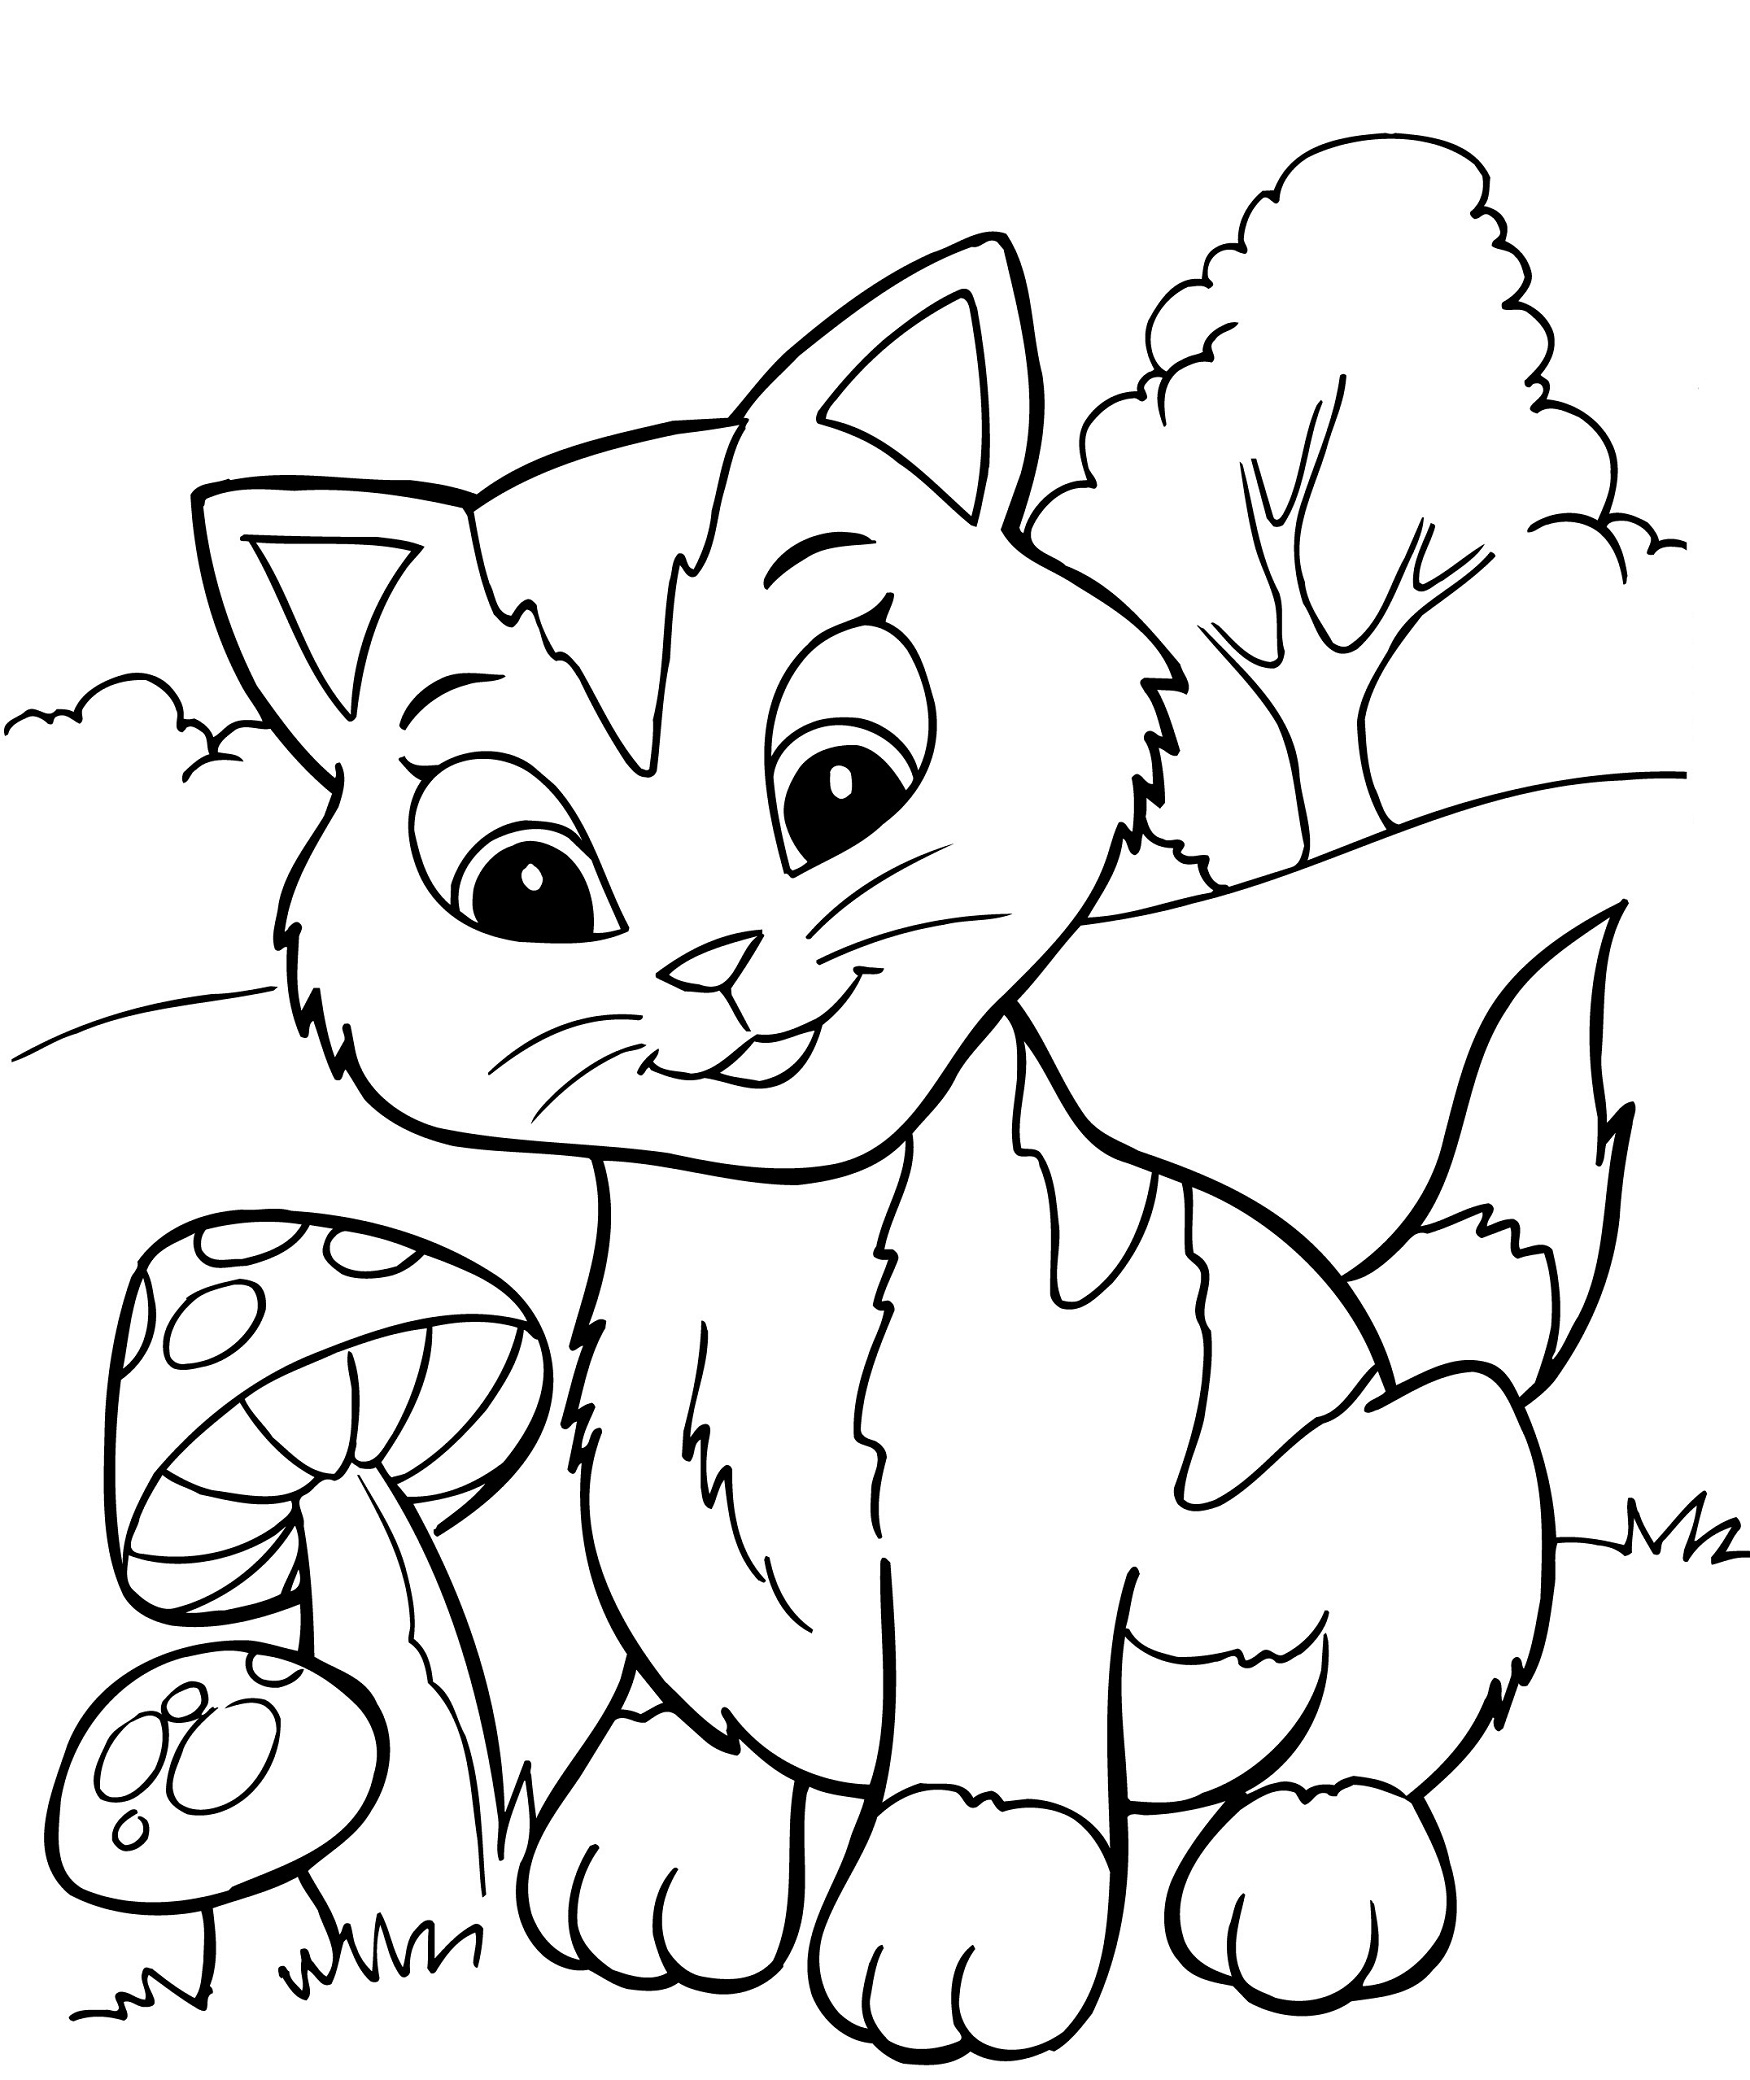 coloring sheets cats kitten coloring pages best coloring pages for kids sheets coloring cats